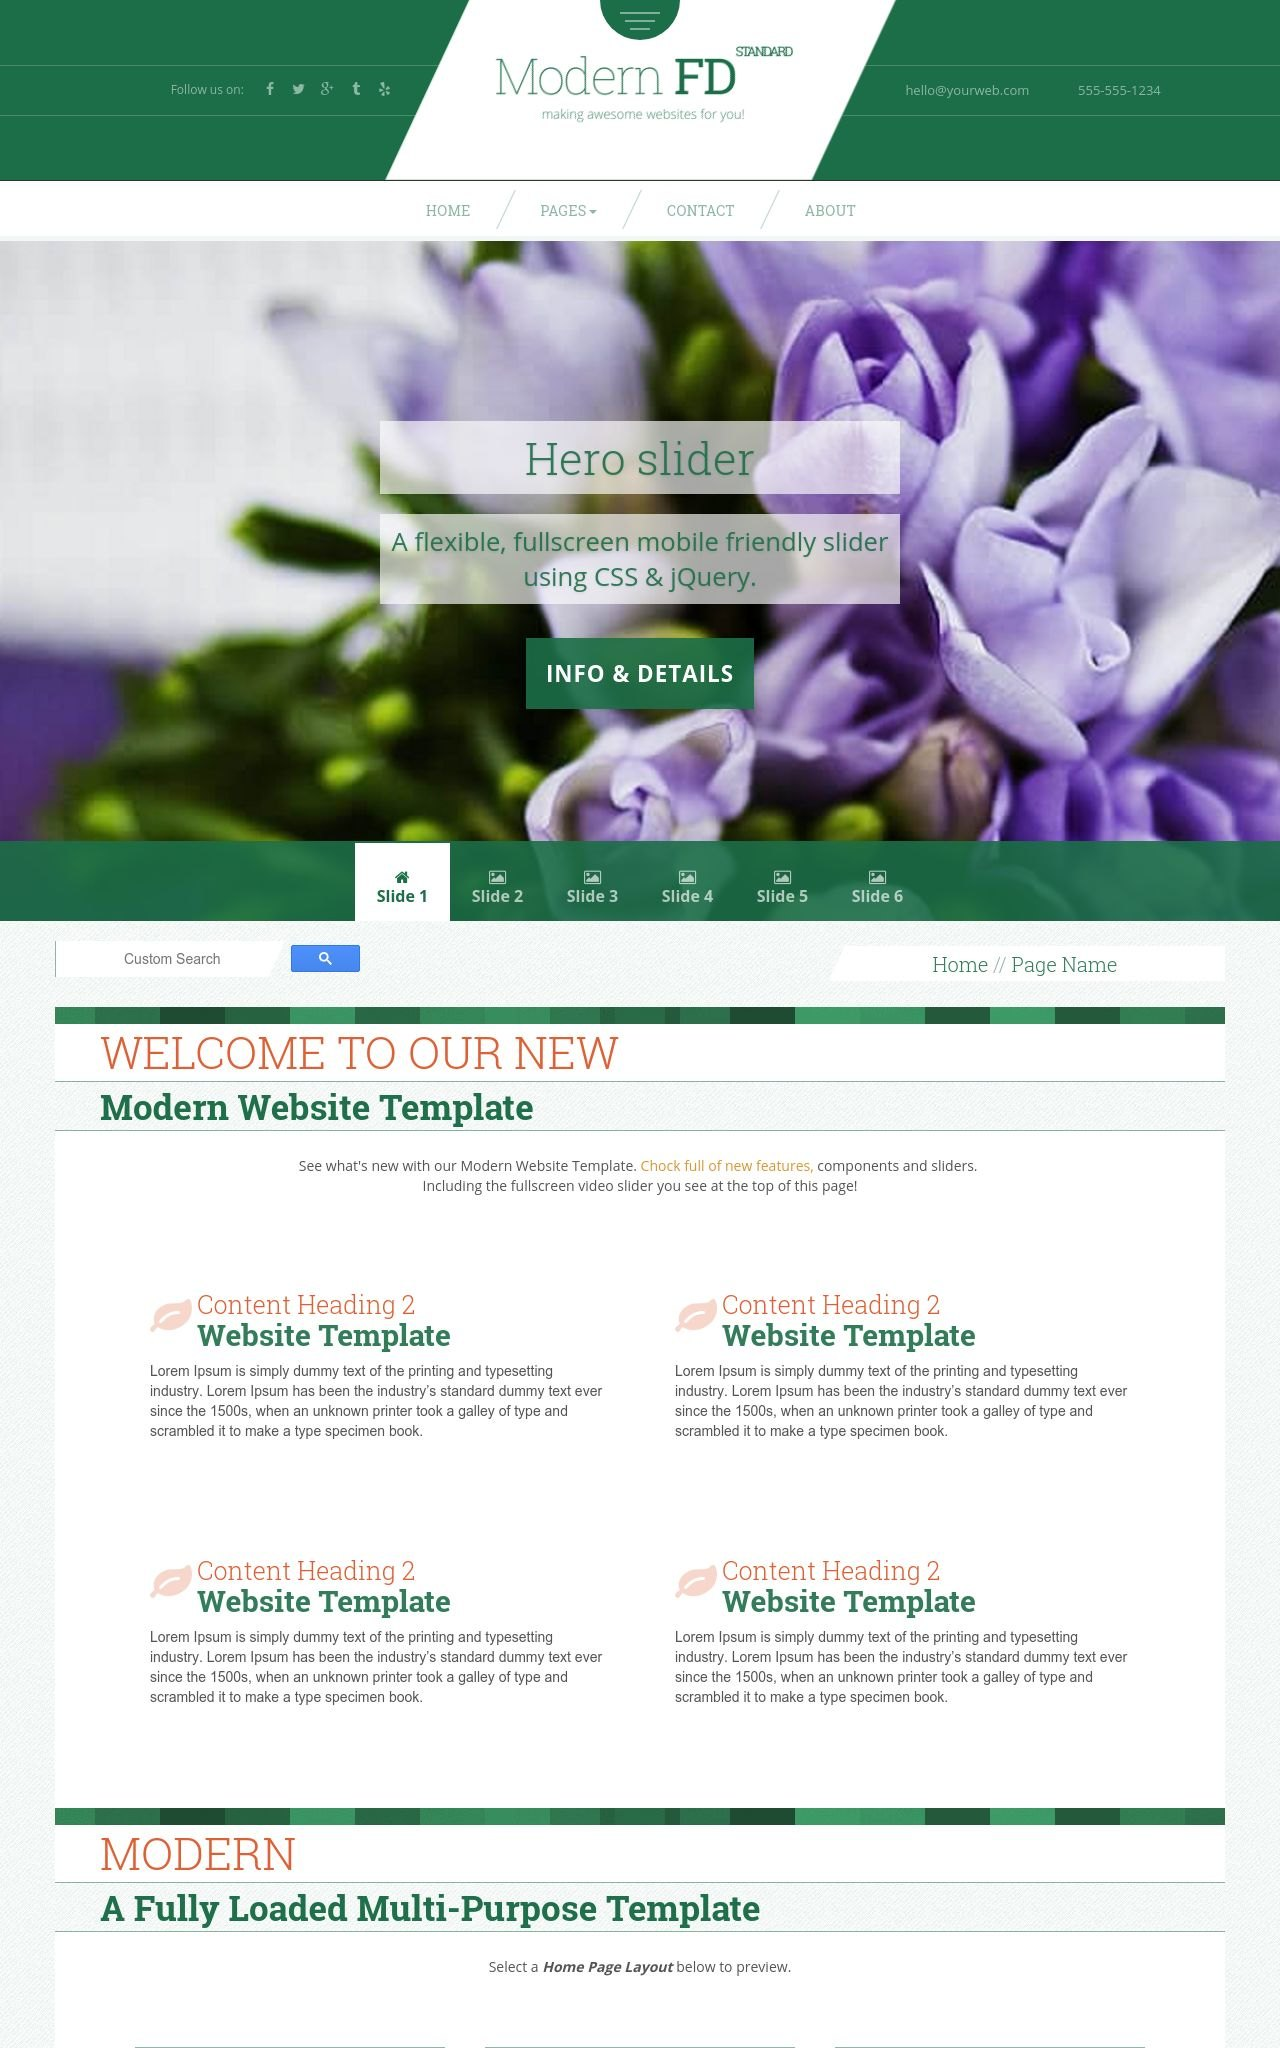 modern fd floral green white3 floral frontpage template